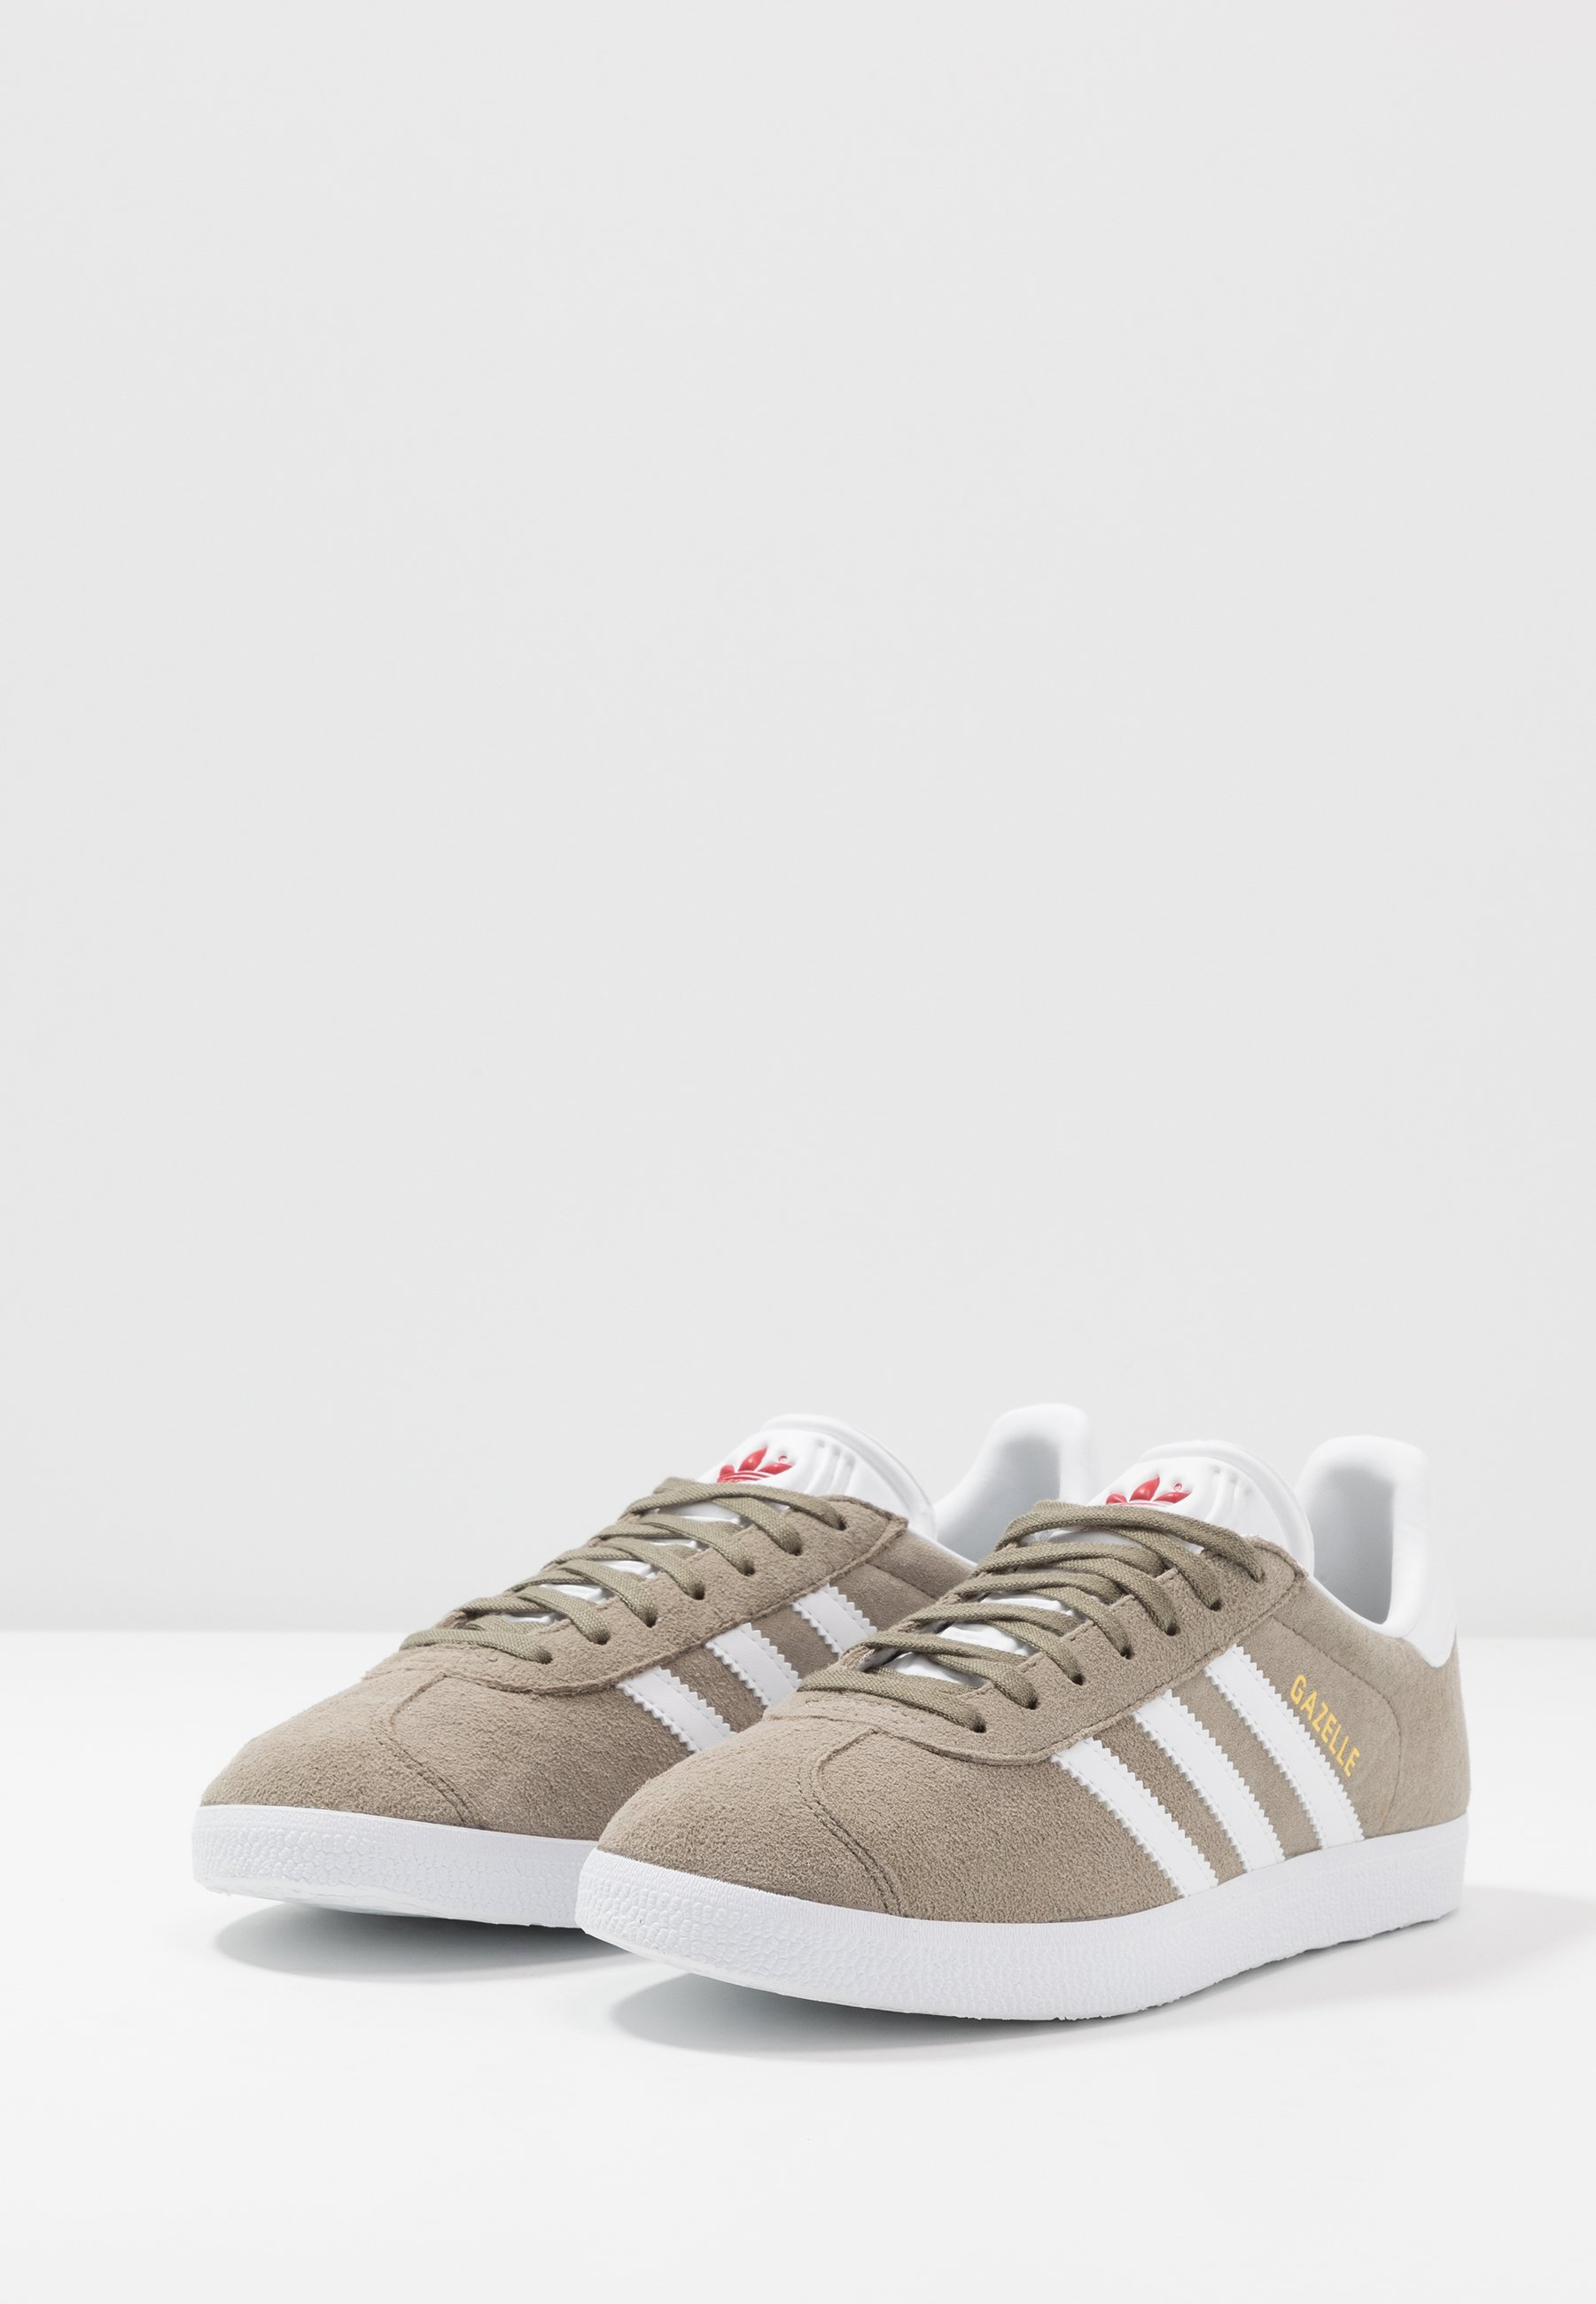 Adidas Originals Gazelle - Sneakers Trace Cargo/footwear White/glow Red